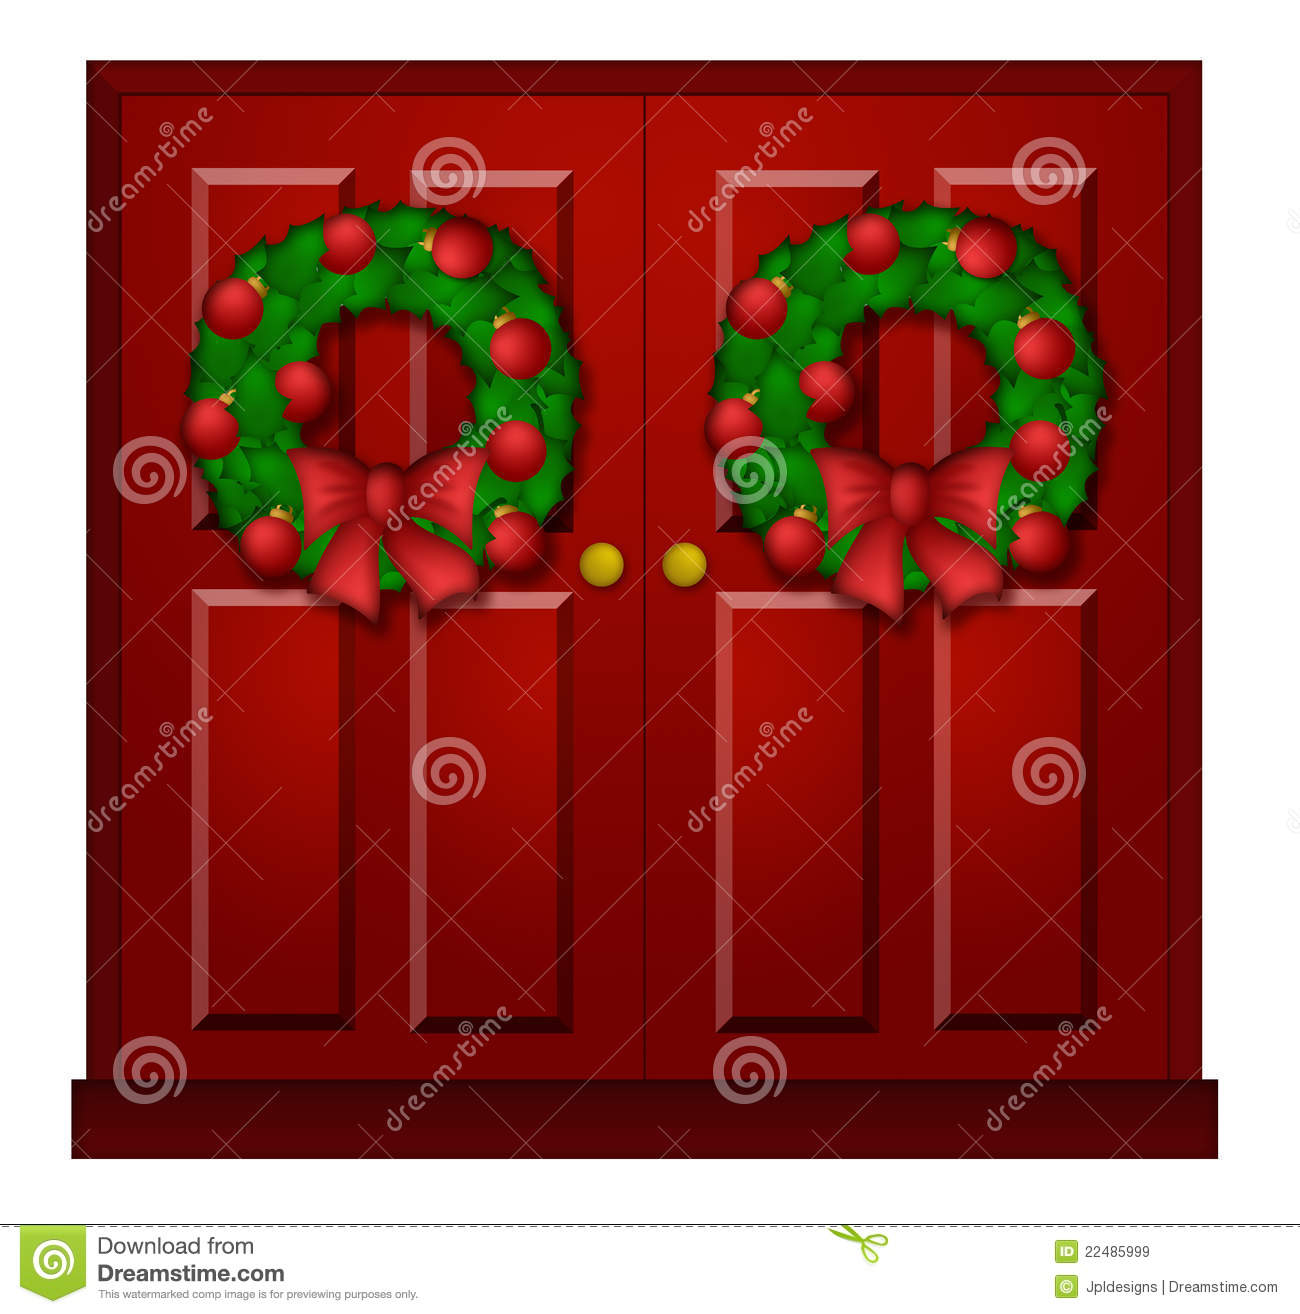 Red Door With Christmas Wreath Illustration Royalty Free Stock Images